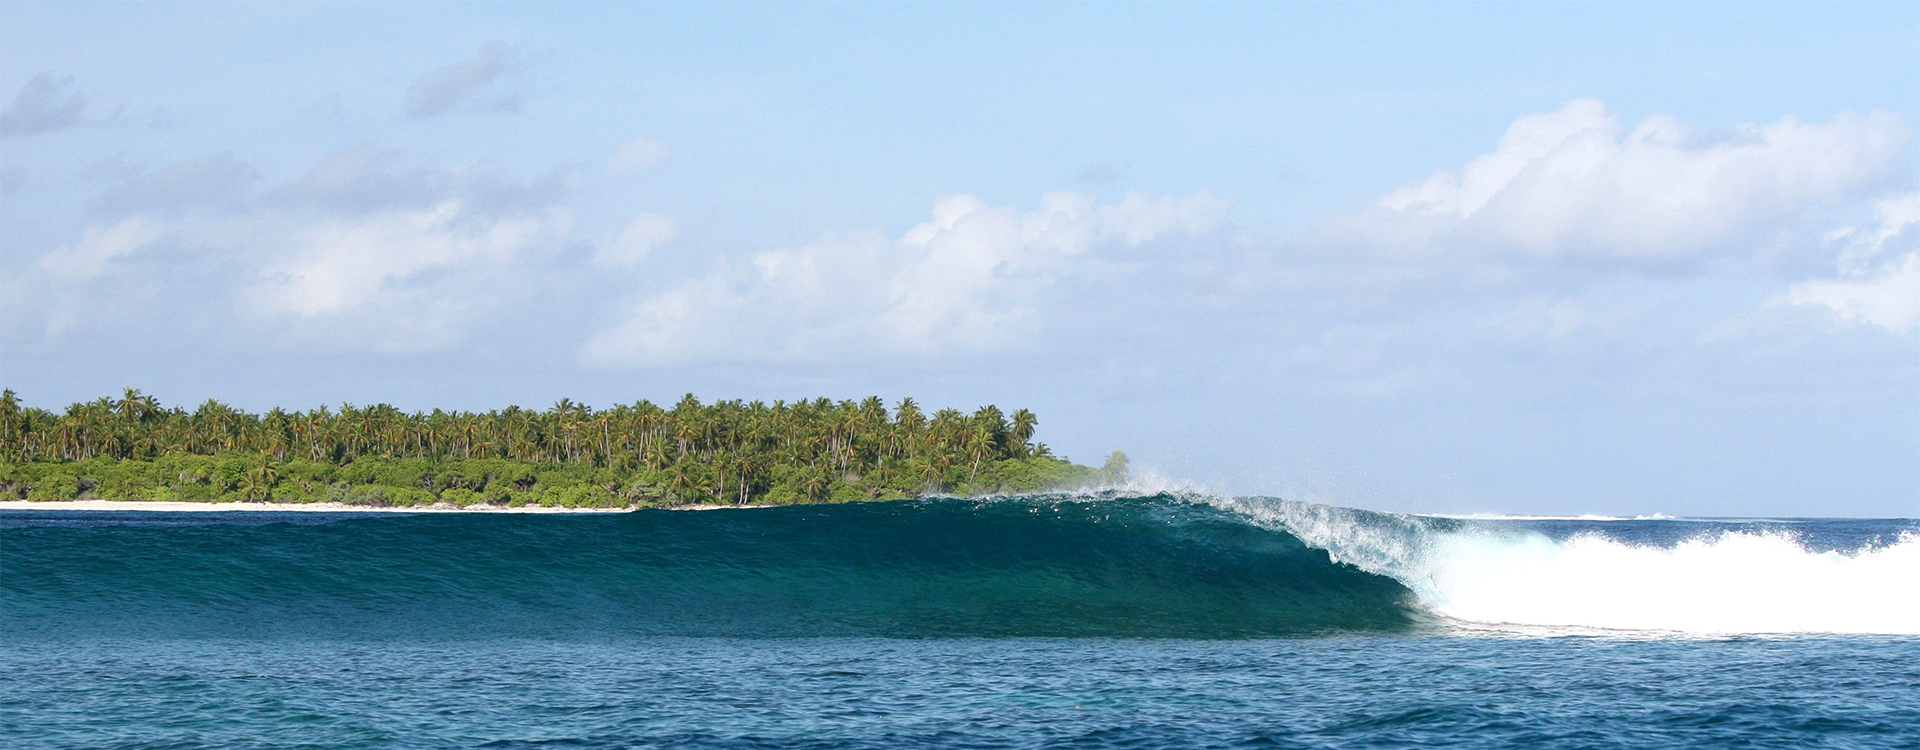 Surferparadies Maalifushi